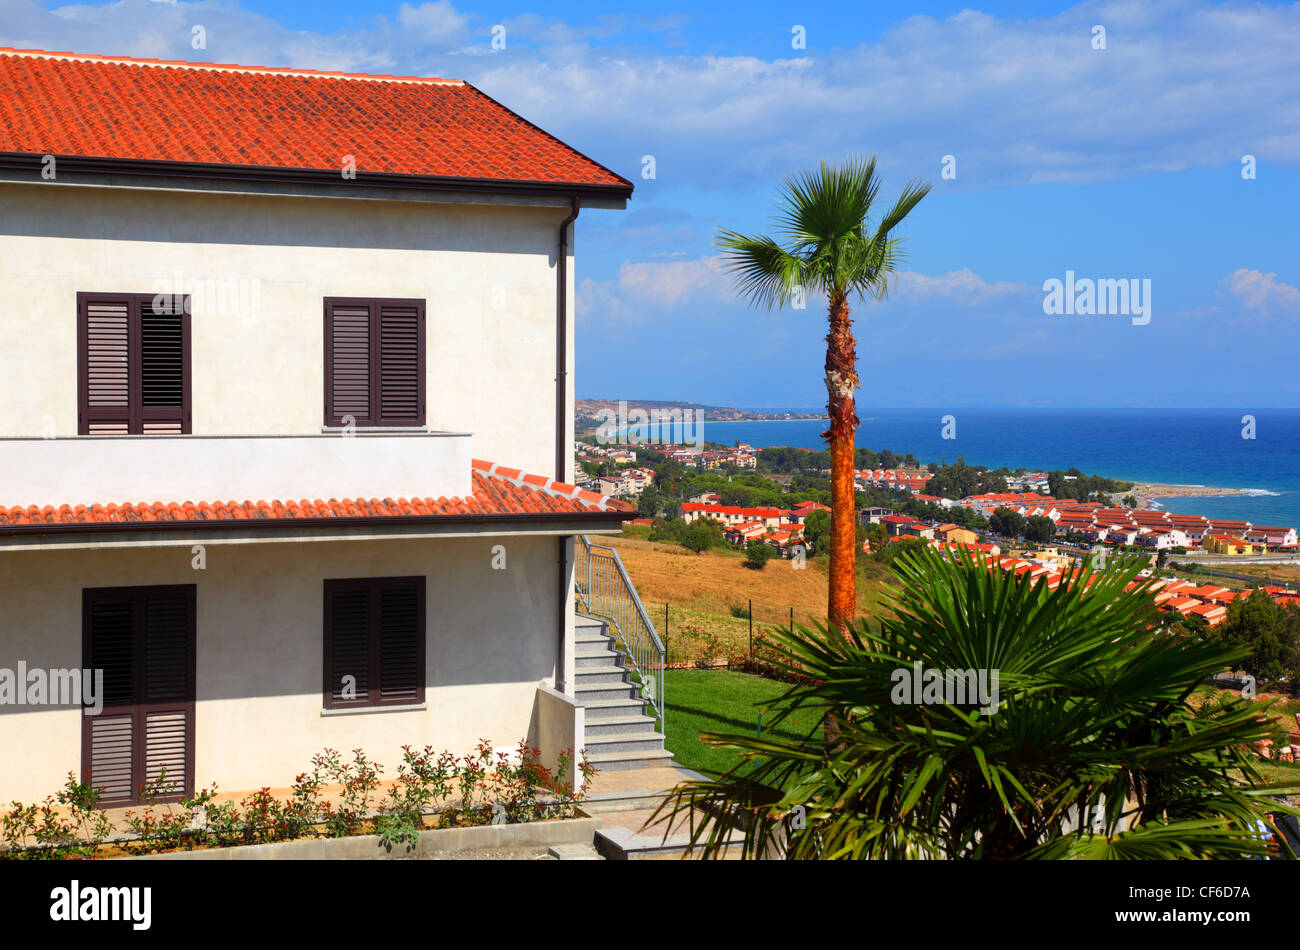 Two Story Roof Stock Photos Amp Two Story Roof Stock Images